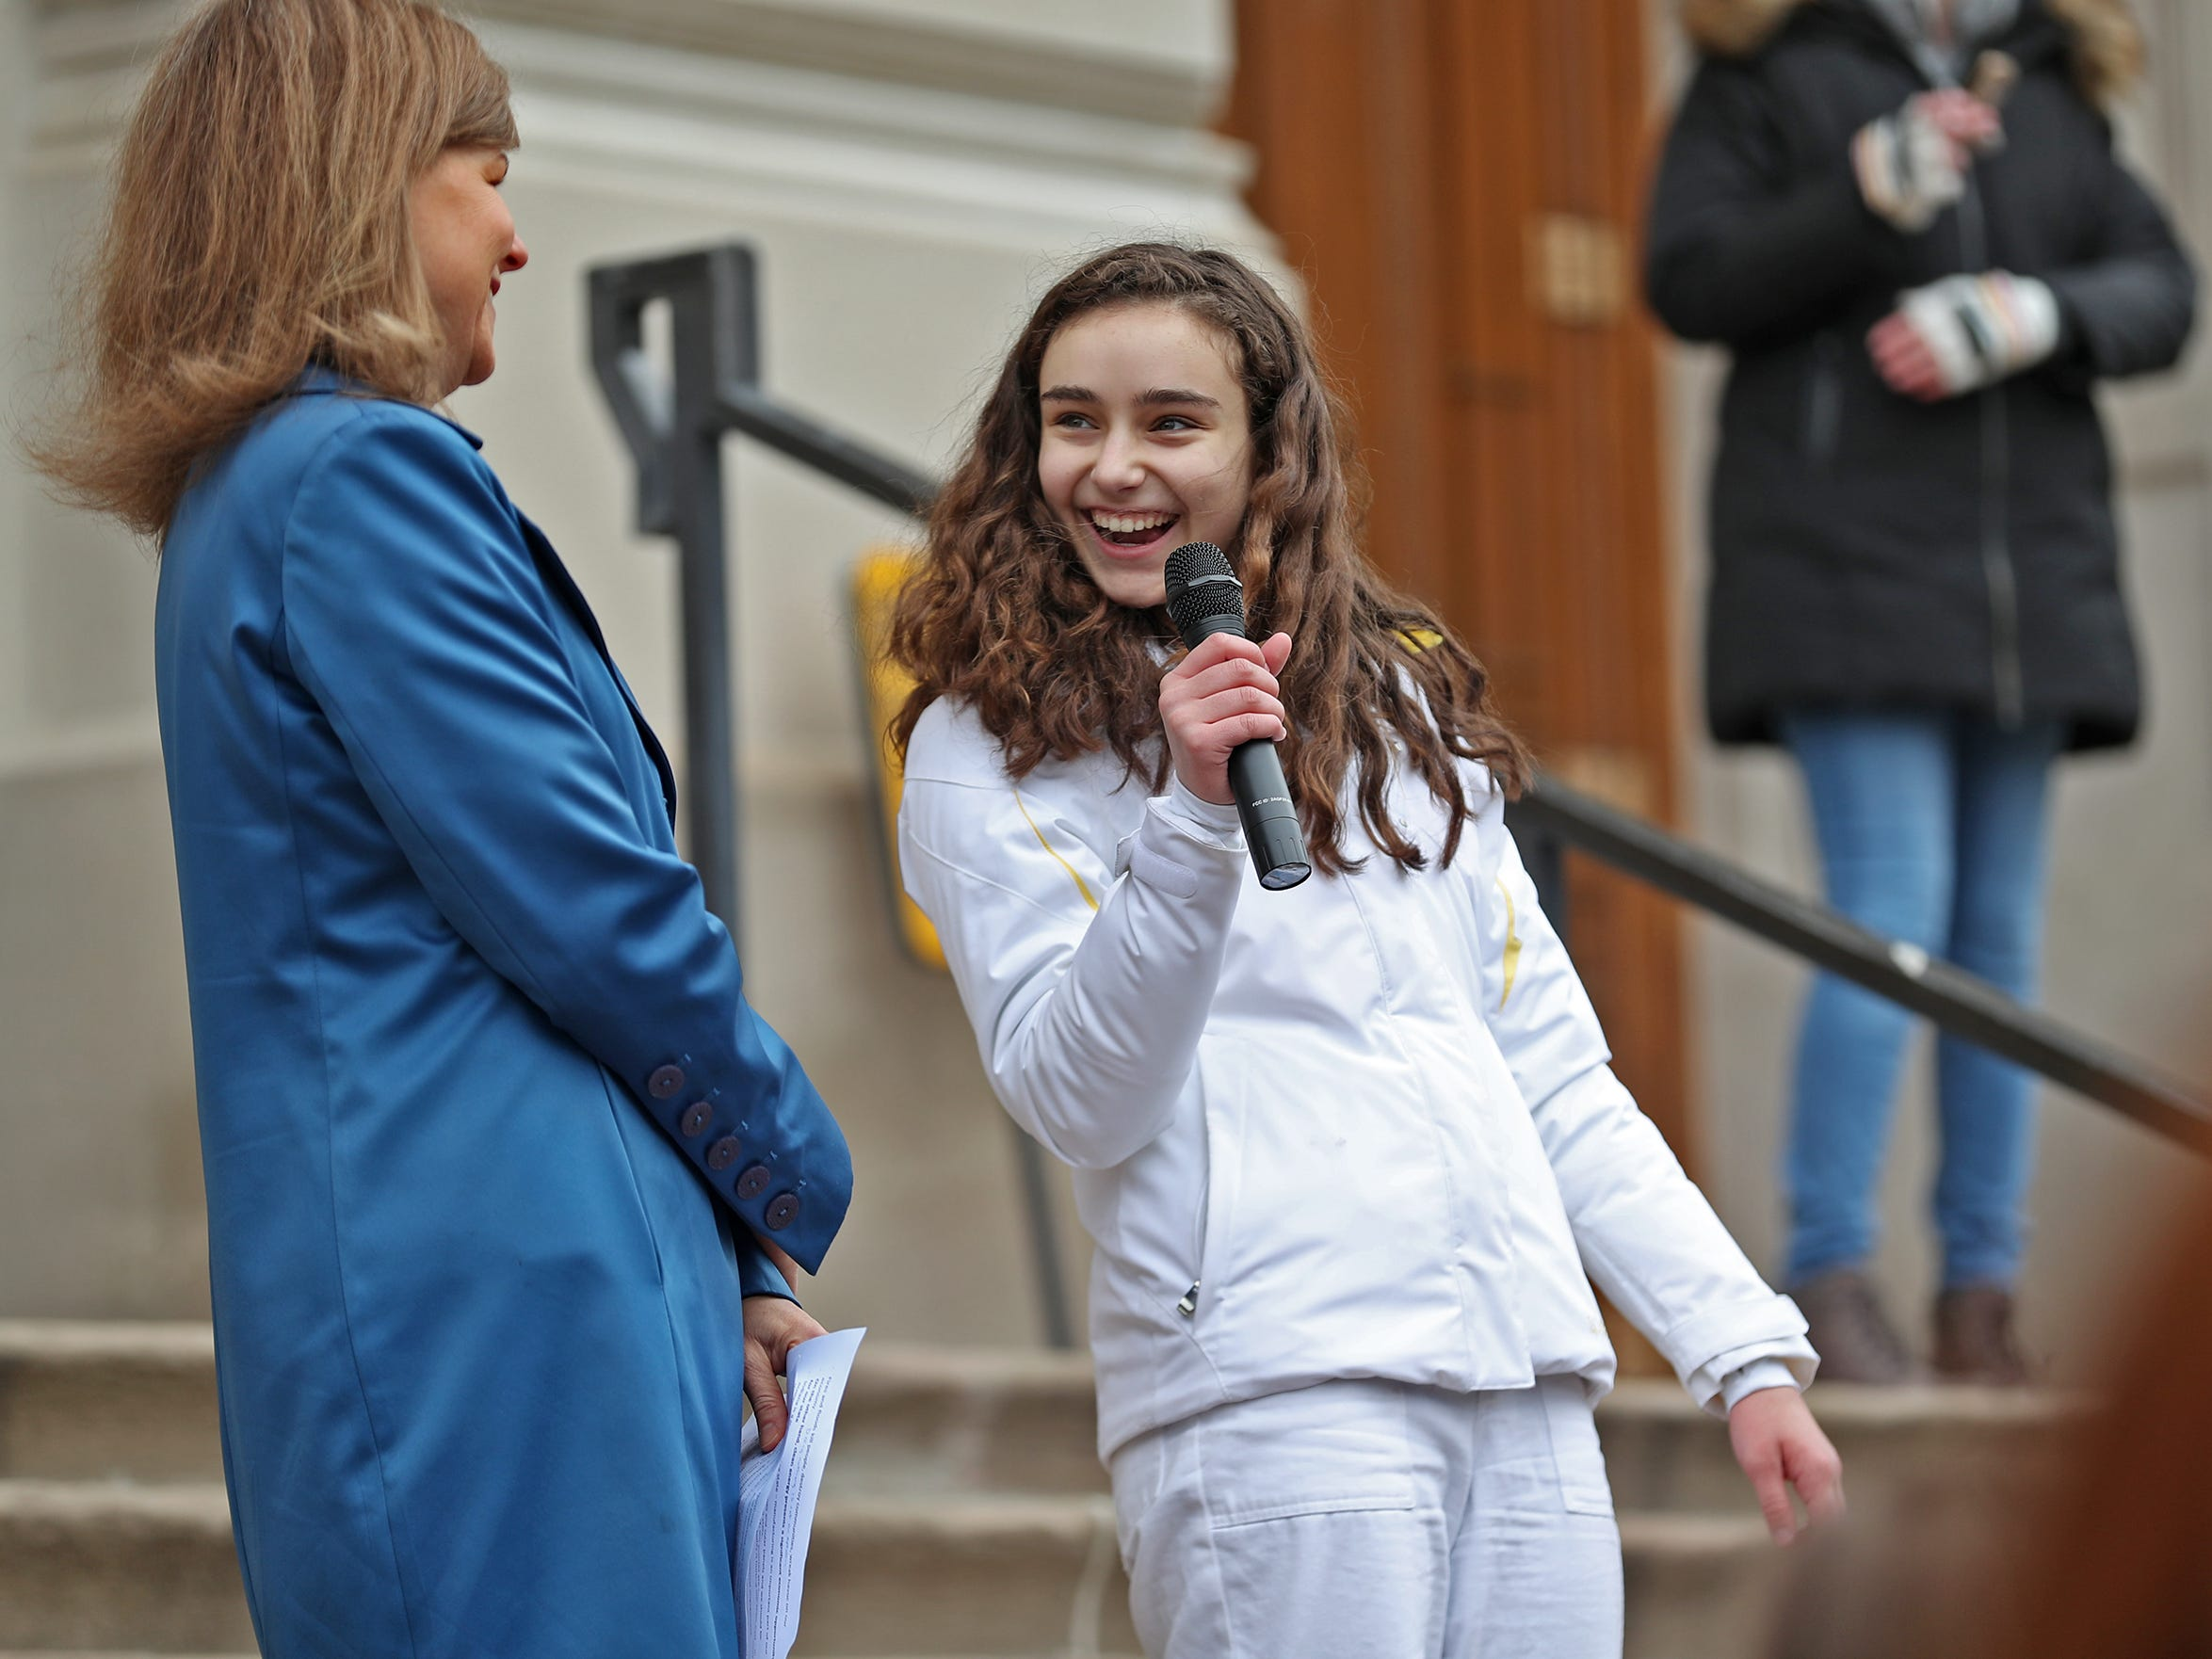 Carmel High School sophomore Isabella Fallahi, right, laughs as she introduces Indiana Representative Carey Hamilton to address the crowd during the Indiana part of the international Climate Strike, Friday, March 15, 2019, held outside the Indiana Statehouse.  Following in the footsteps of 16-year-old Swedish trailblazer, Greta Thunberg, students around the world are skipping school to protest government inaction on climate change.